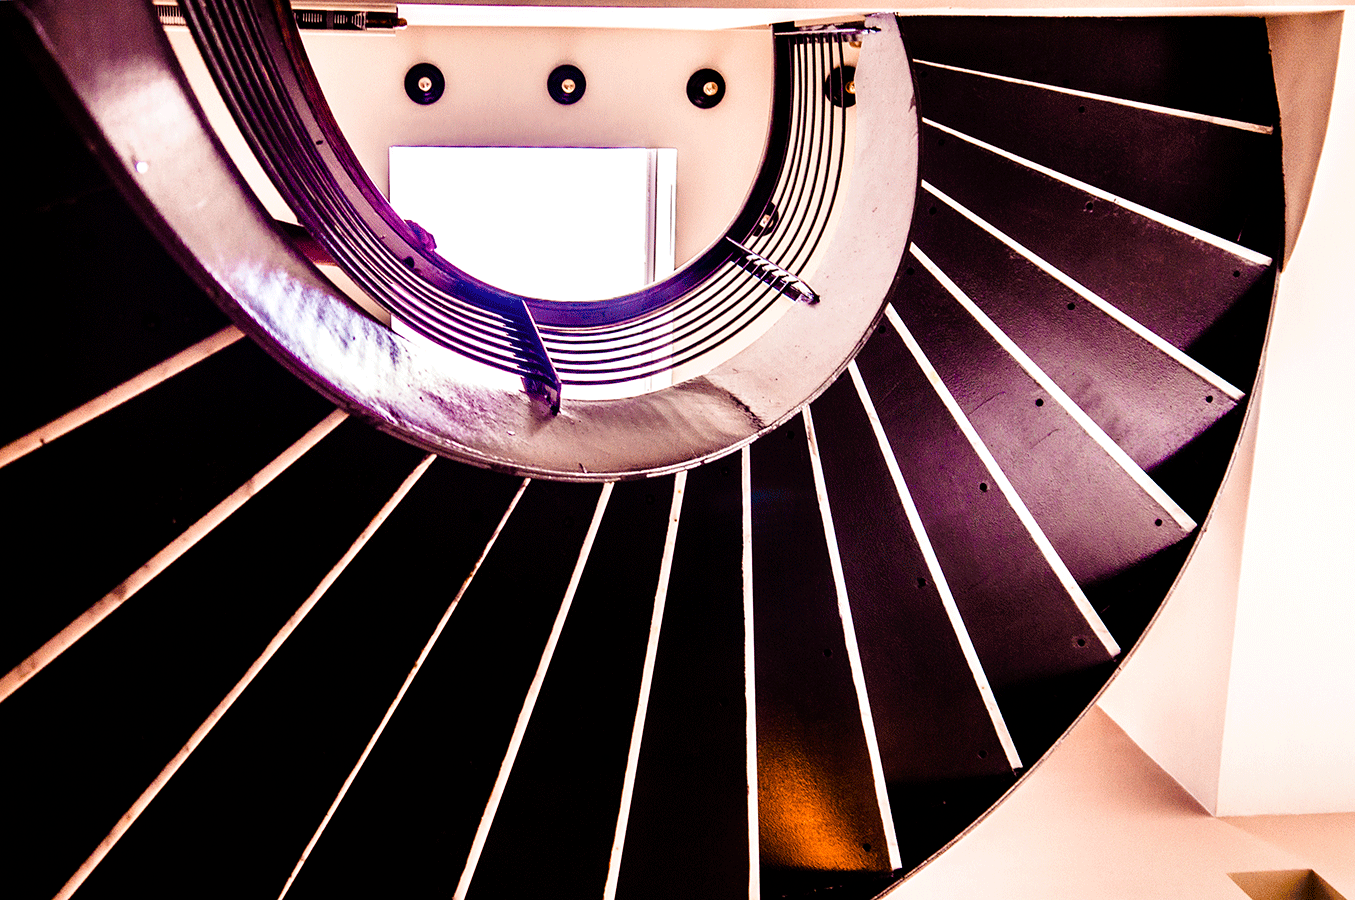 9thAve_802-(42)stair.png